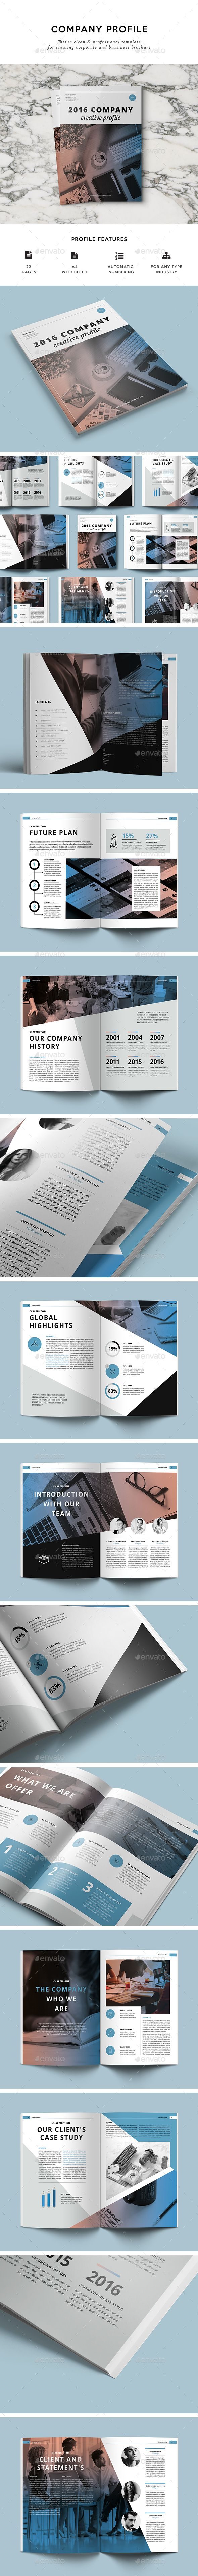 Company Profile Brochure Template InDesign INDD. Download here: https://graphicriver.net/item/company-profile/17388269?ref=ksioks